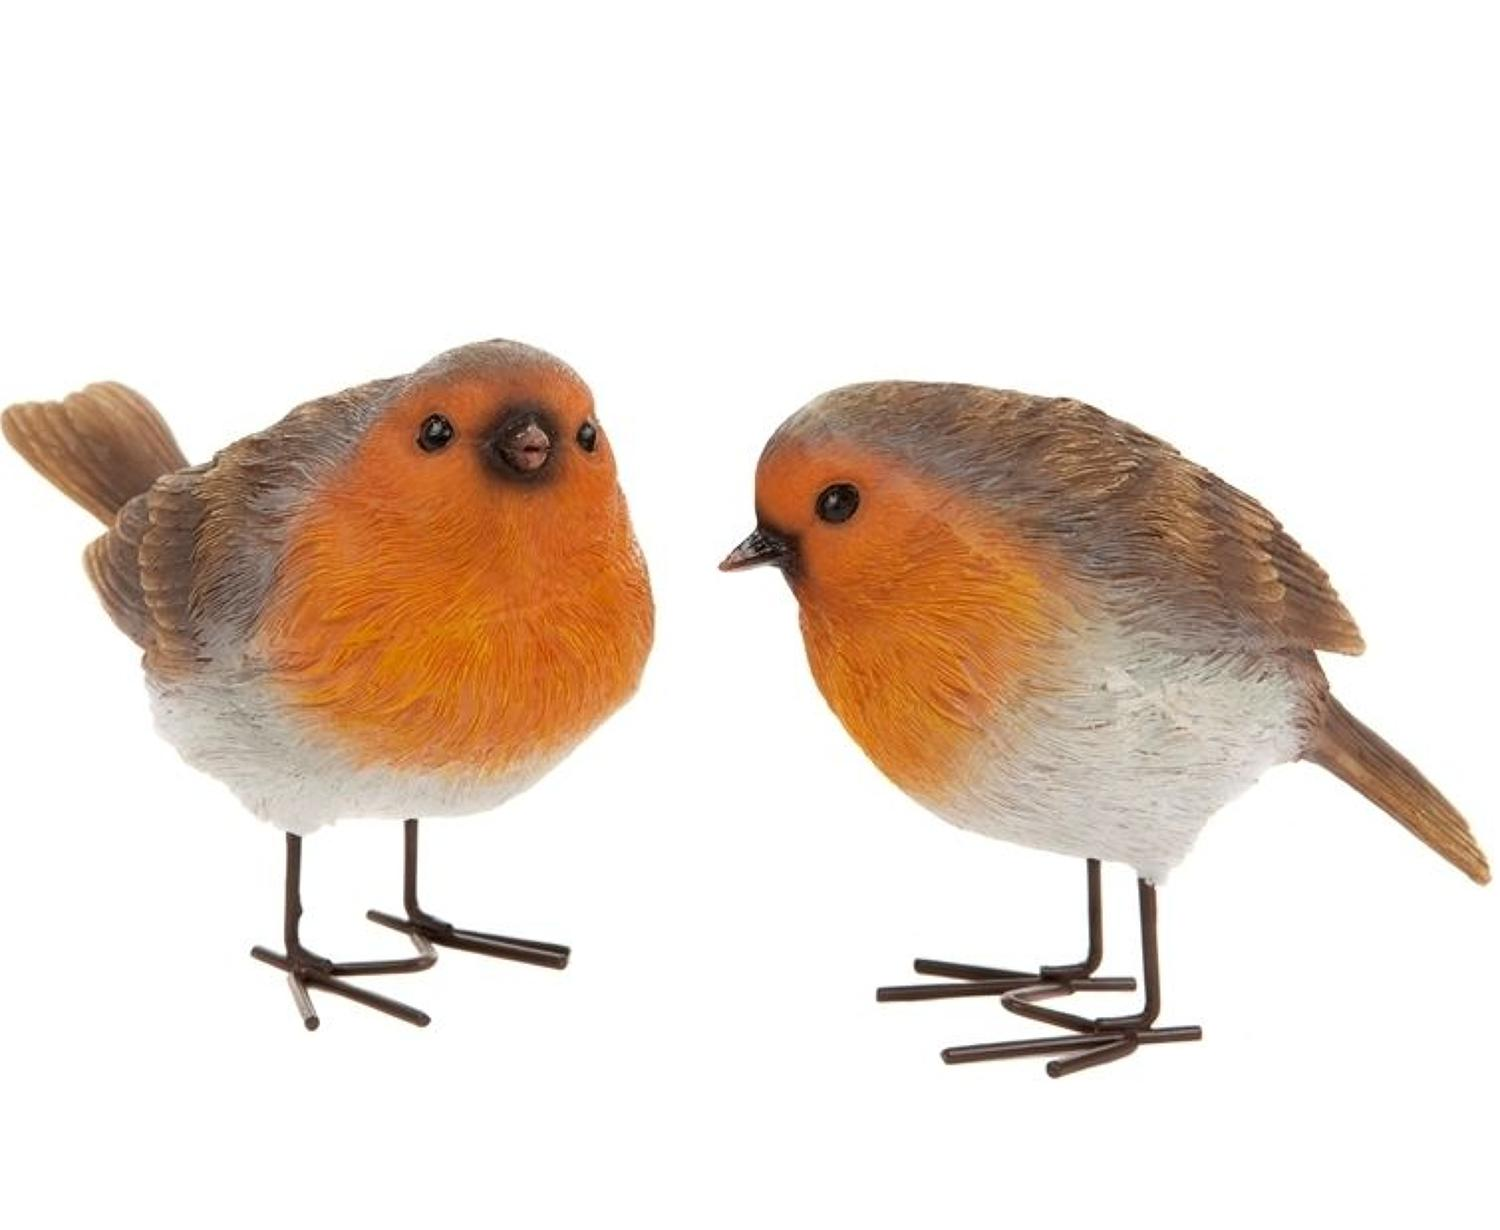 Pair of Robins